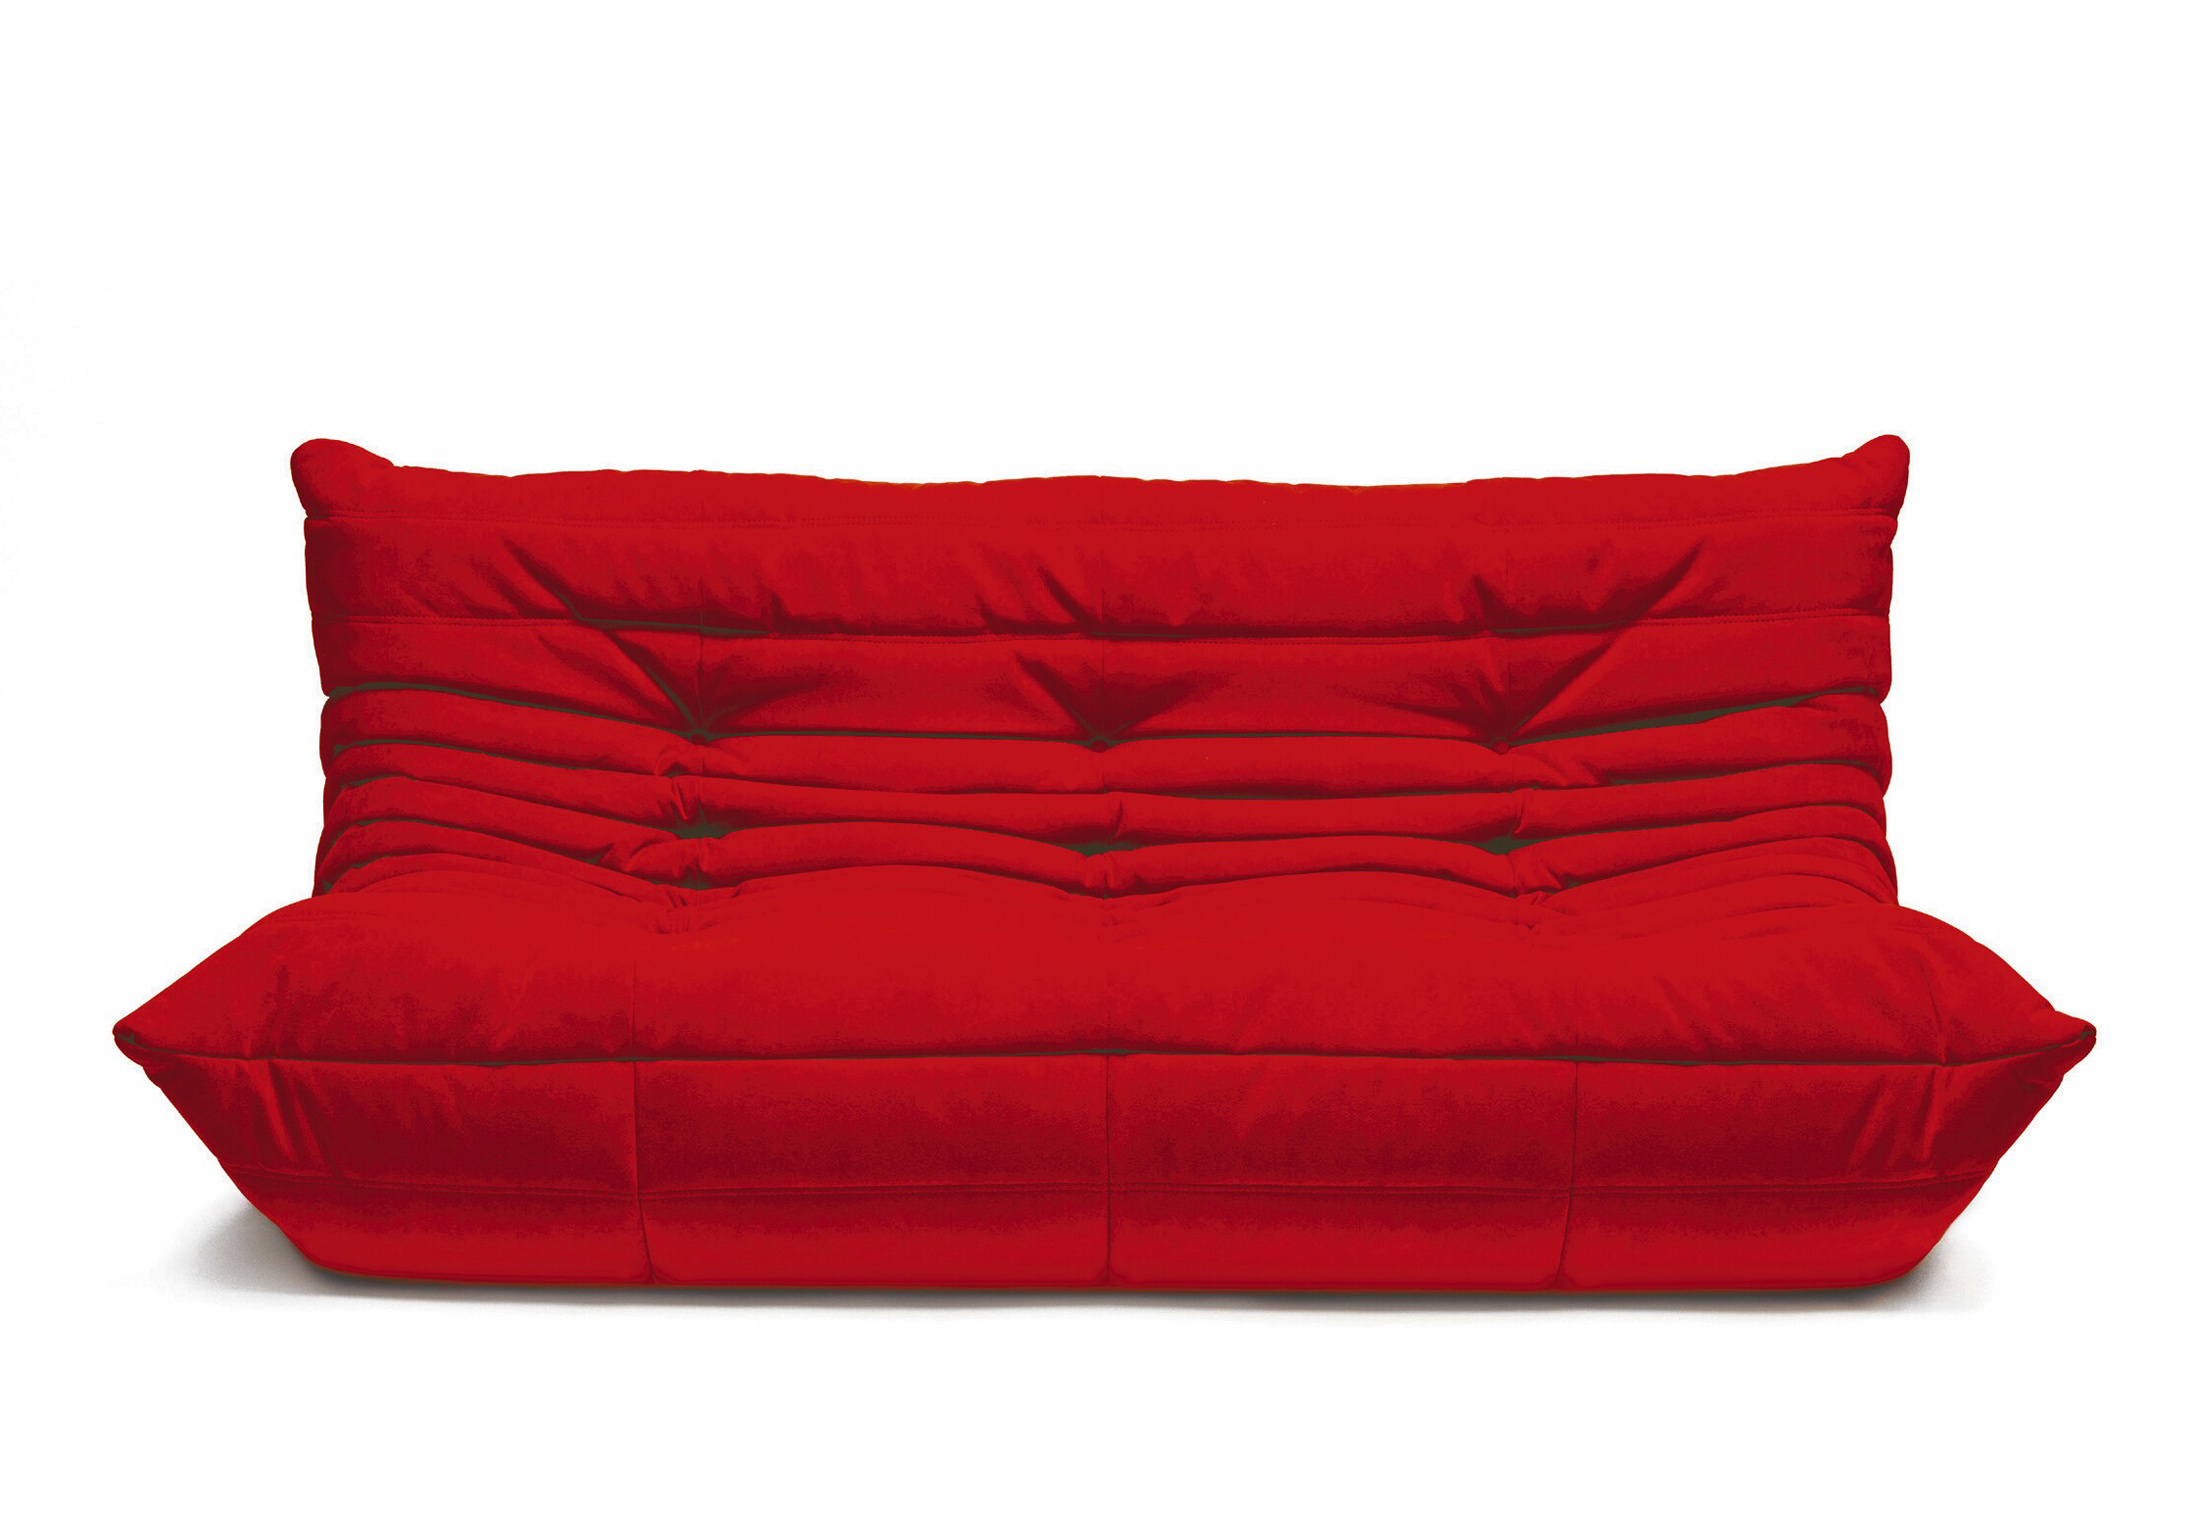 Togo Sofa Dimensions Togo Sofa 3 Seater By Ligne Roset Stylepark